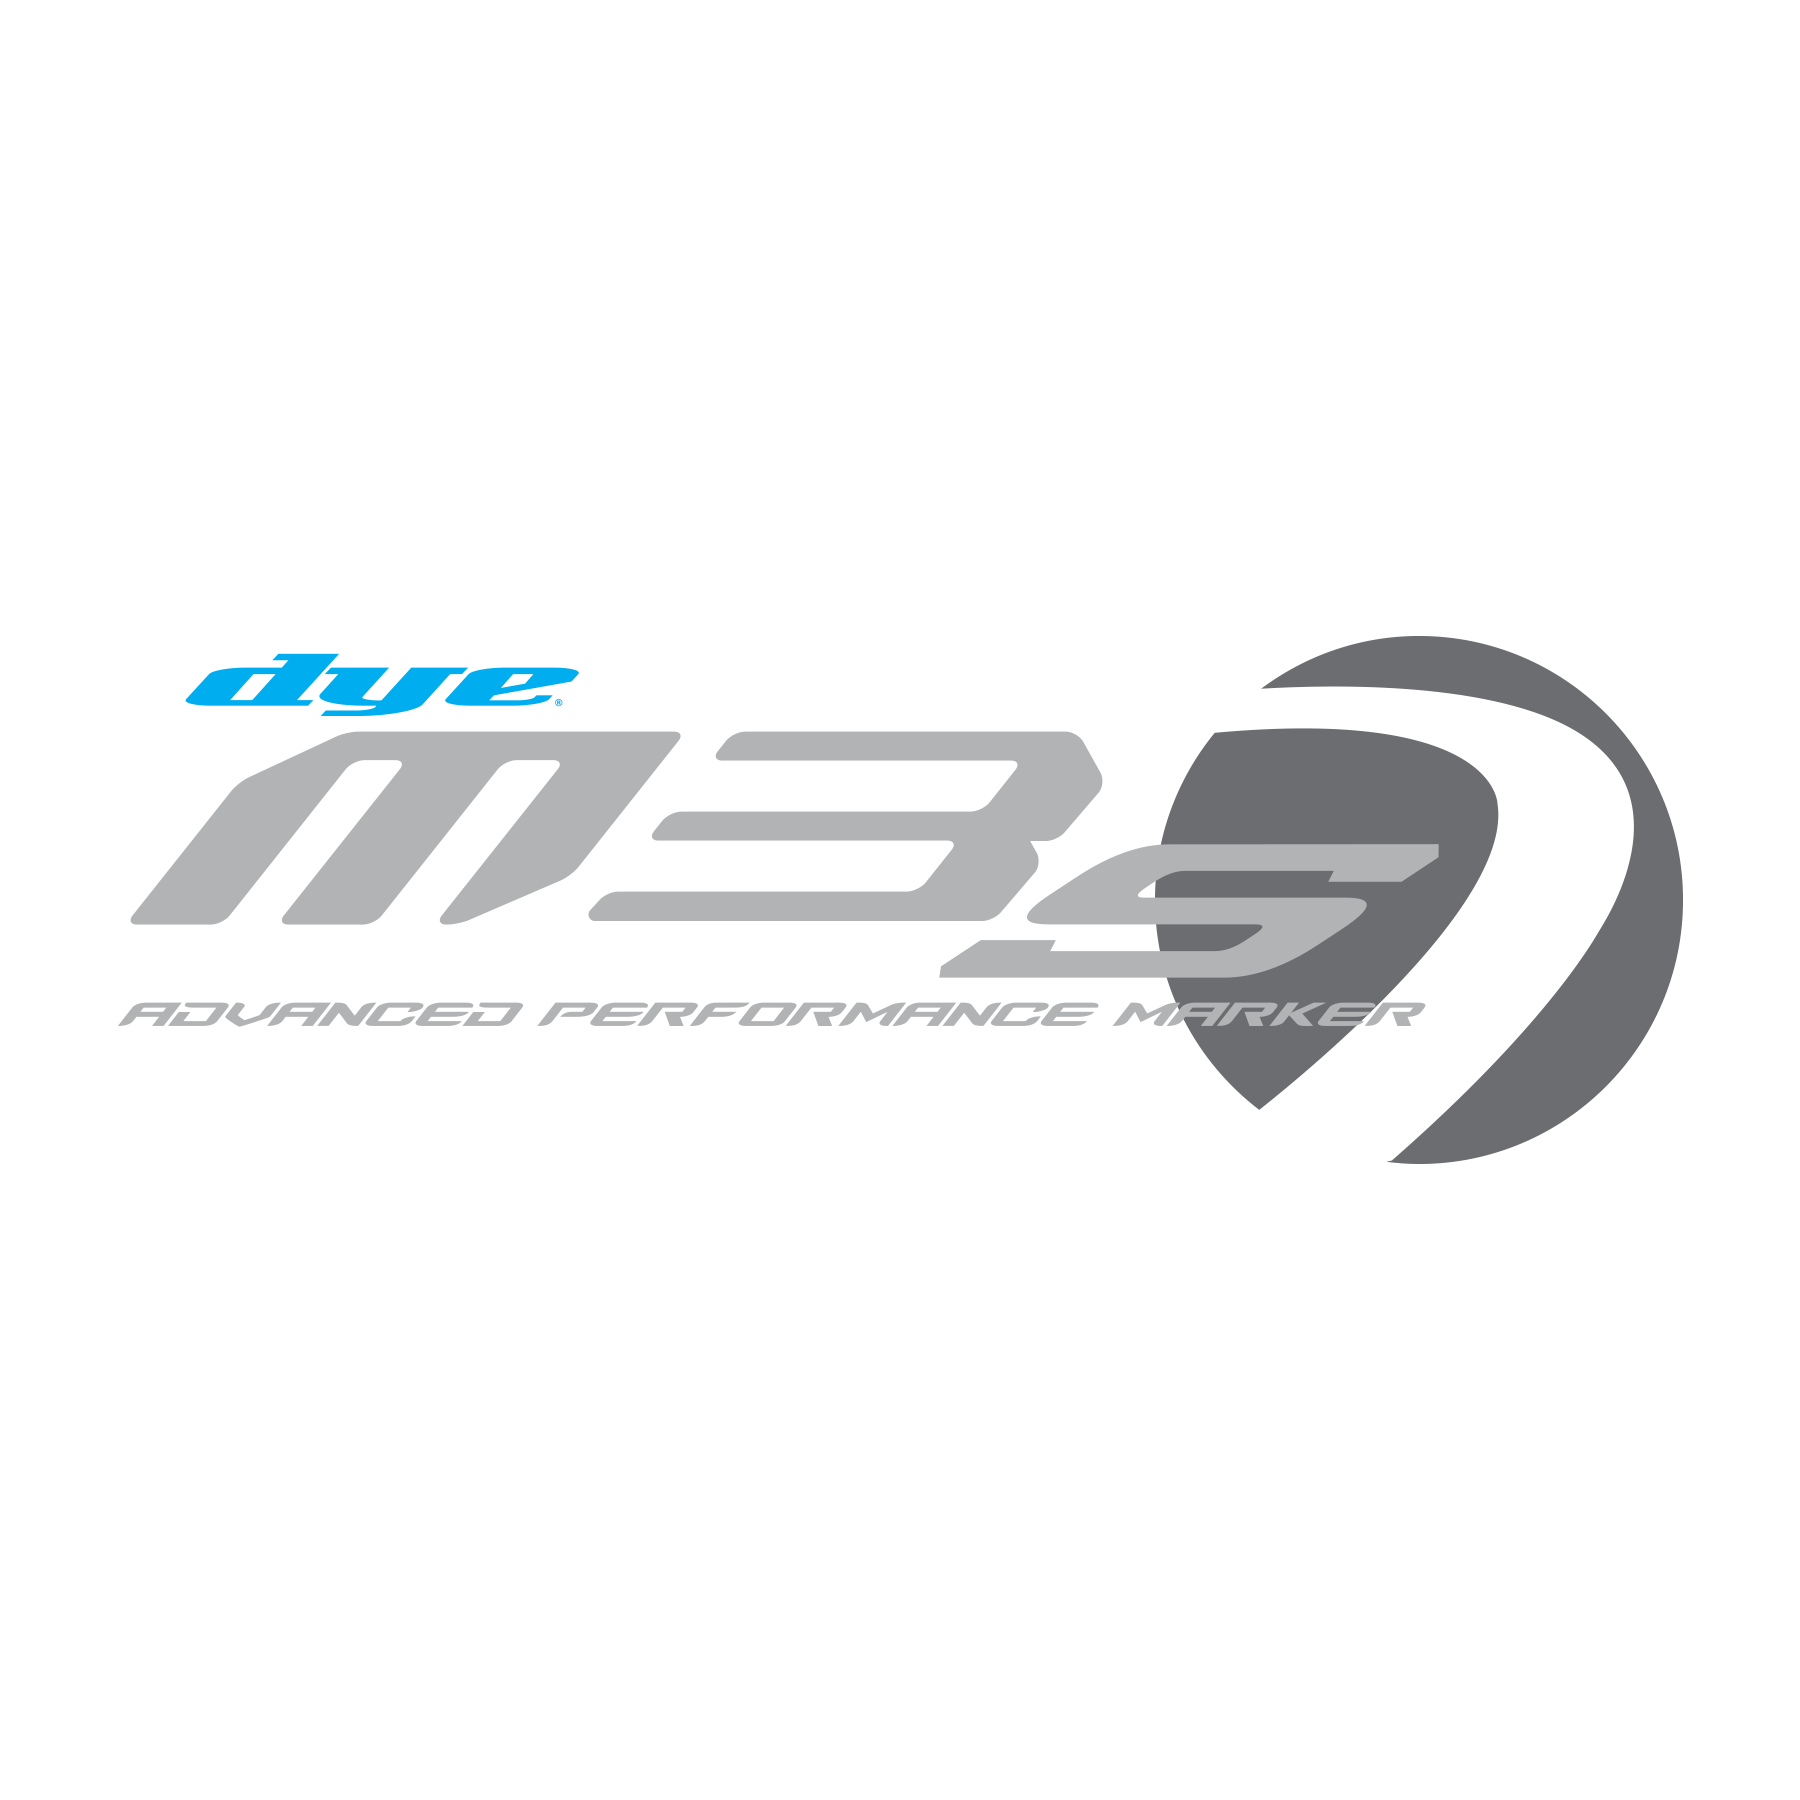 M3s.png